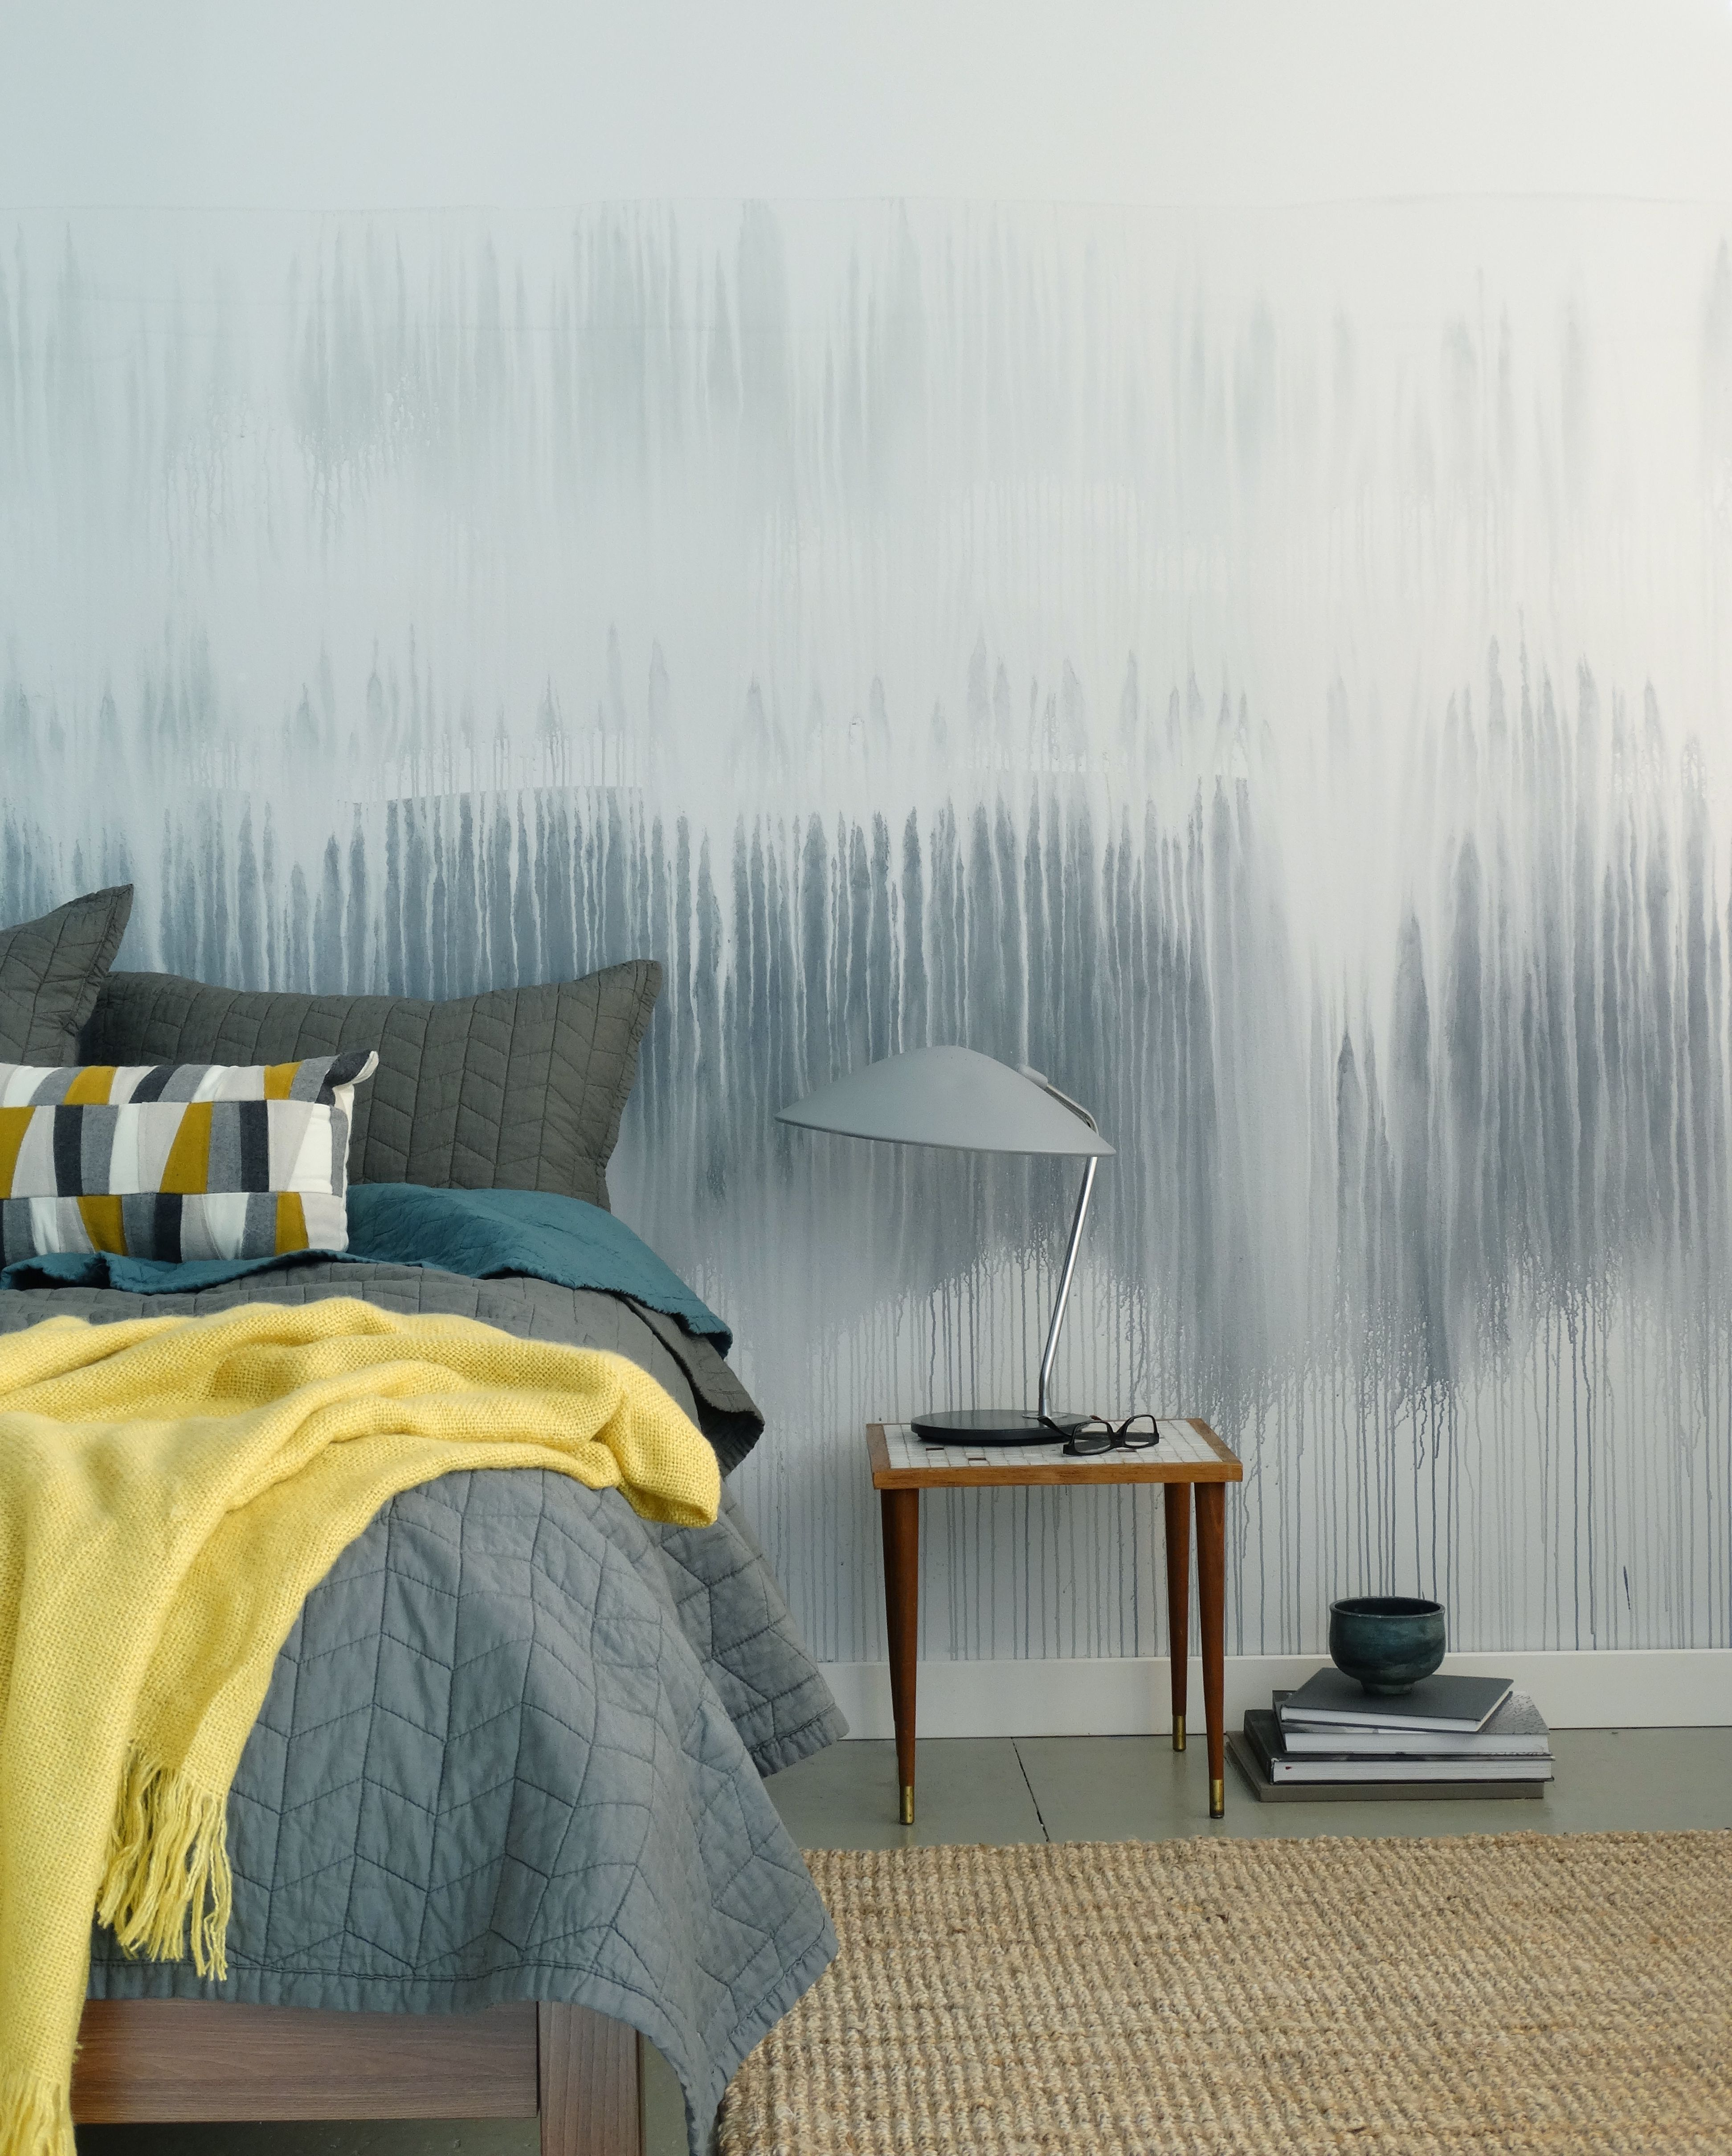 How To Paint An Ombre Wall Wall Painting Techniques Wall Paint